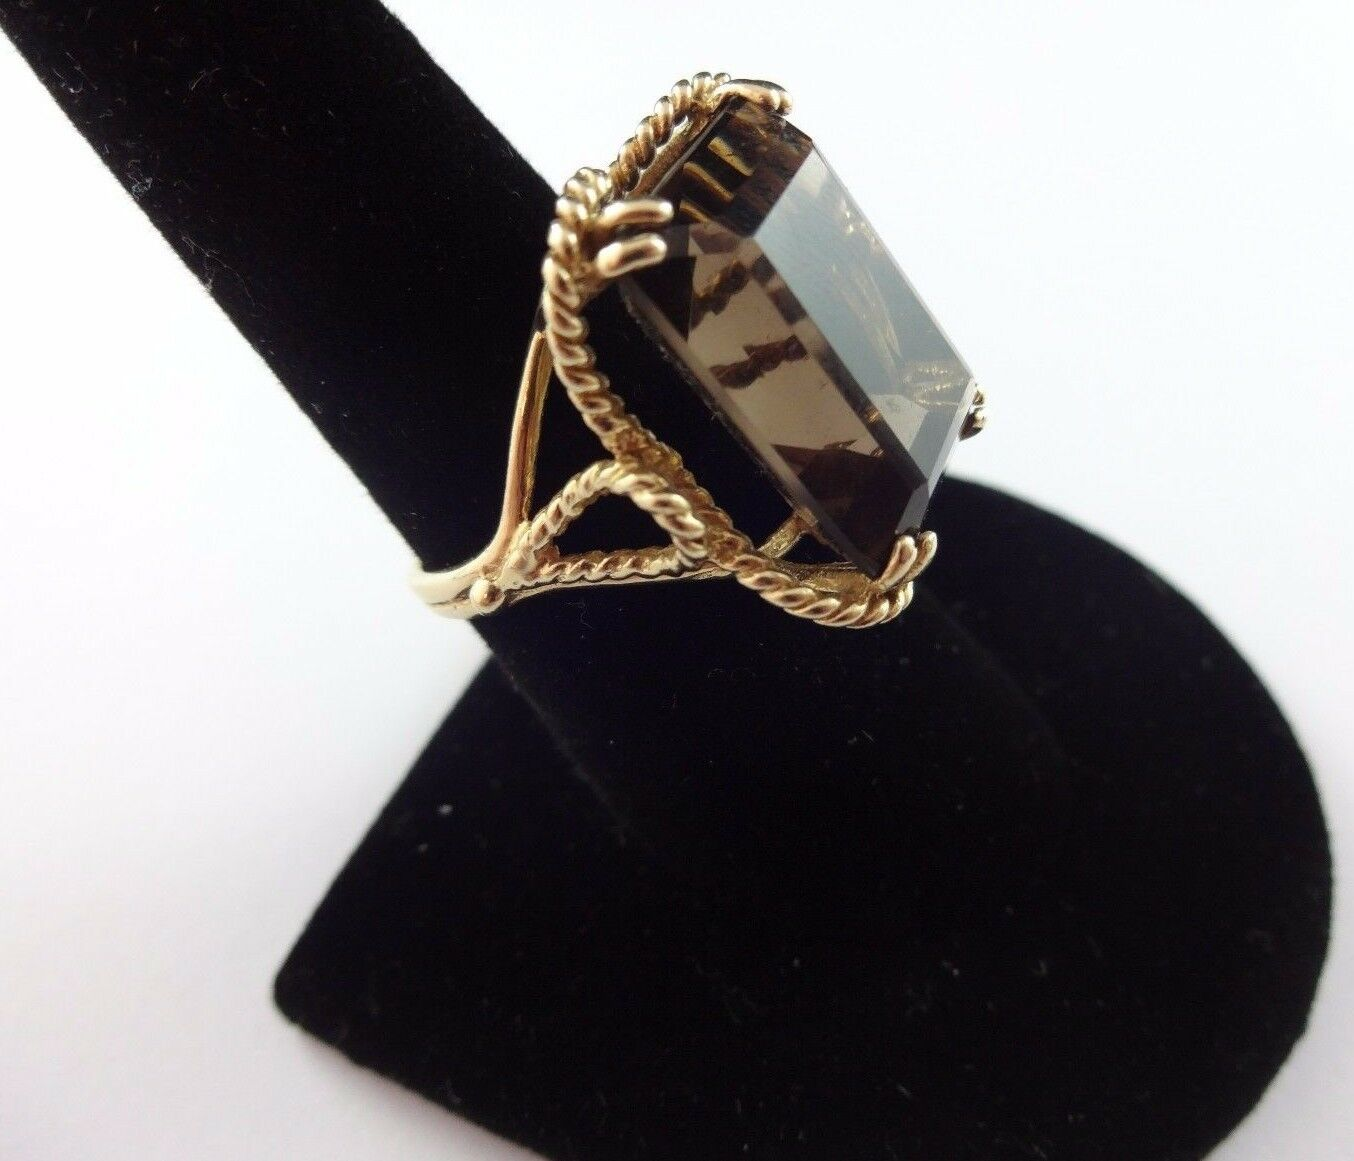 Vintage Solid 14k Yellow gold Solitaire Ring with HUGE Smoky Quartz Gemstone